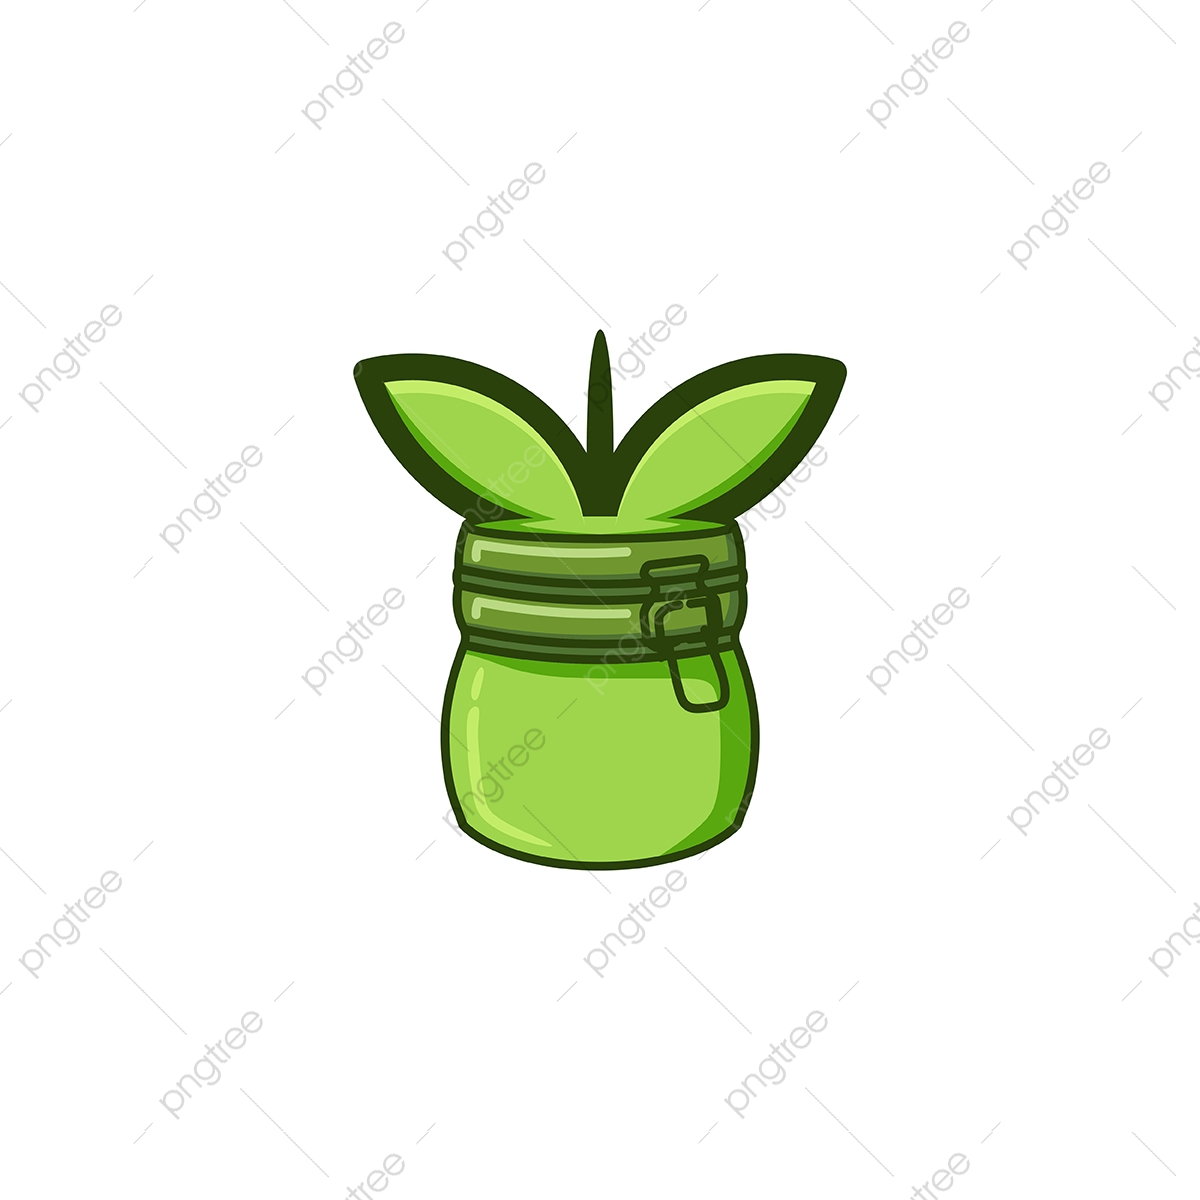 pngtree jar and seed logo designs inspiration isolated on white backgrou png image 5008824